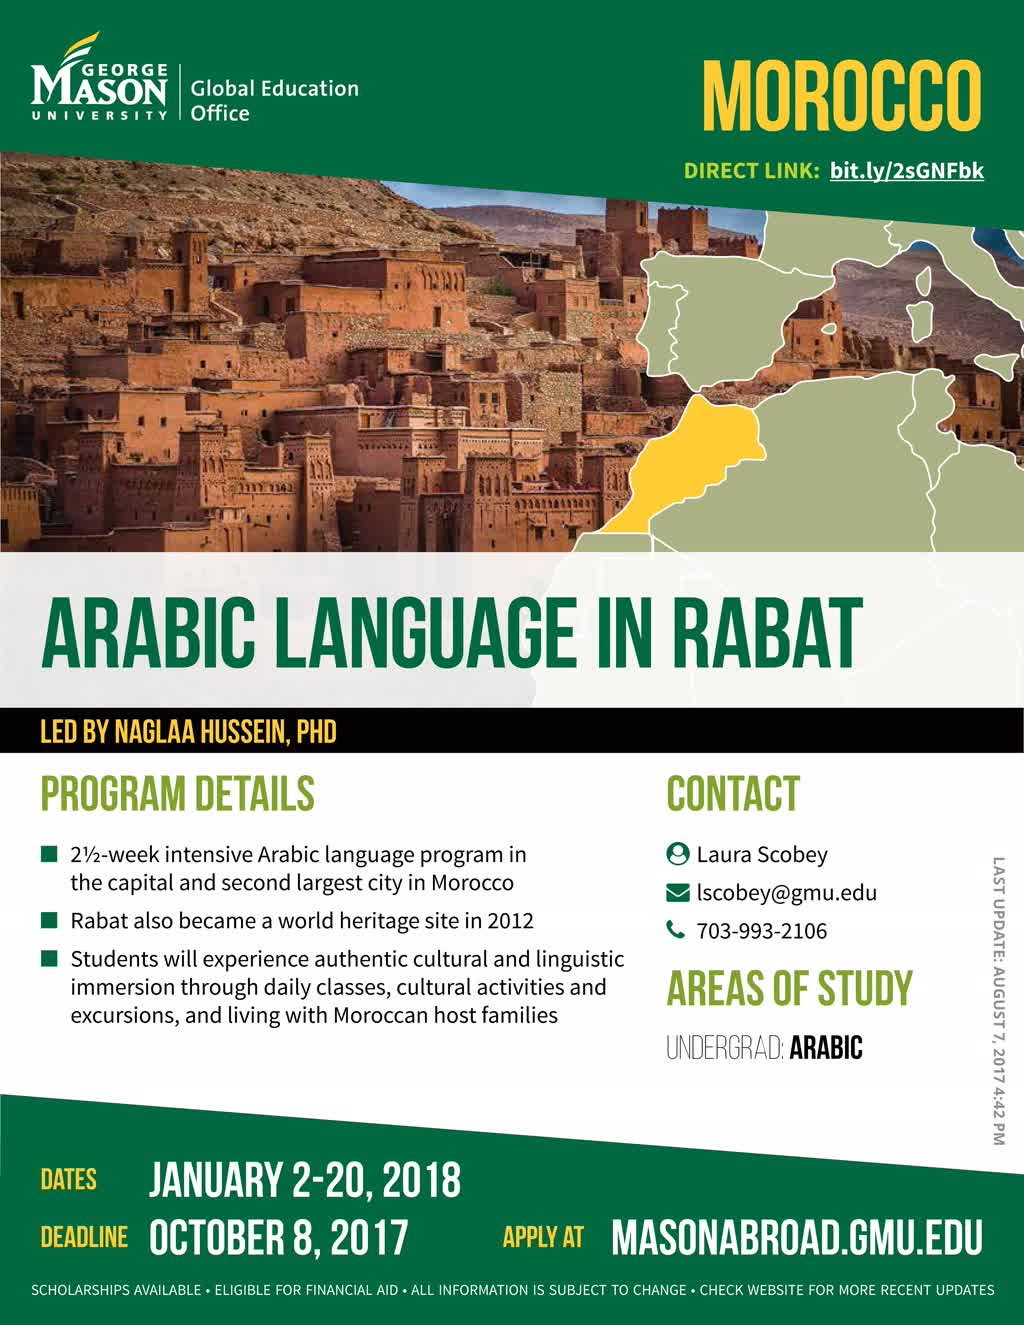 Information regarding Arabic Language in Rabat is as follows Start date (when you would like your content to be posted) is September 11 2017 and End Date  (when you would like your content to be removed from the screens) is December 01 2017 and Name of Ad/Event is Arabic Language in Rabat and File is Browse and Name is Global Education Office and Email is goabroad@gmu.edu and File Name is 1507647216_comp.jpg and Create Your Own Tags: is Initiated and Affiliation is Mason Department and Panel for your ad to be displayed is Side and